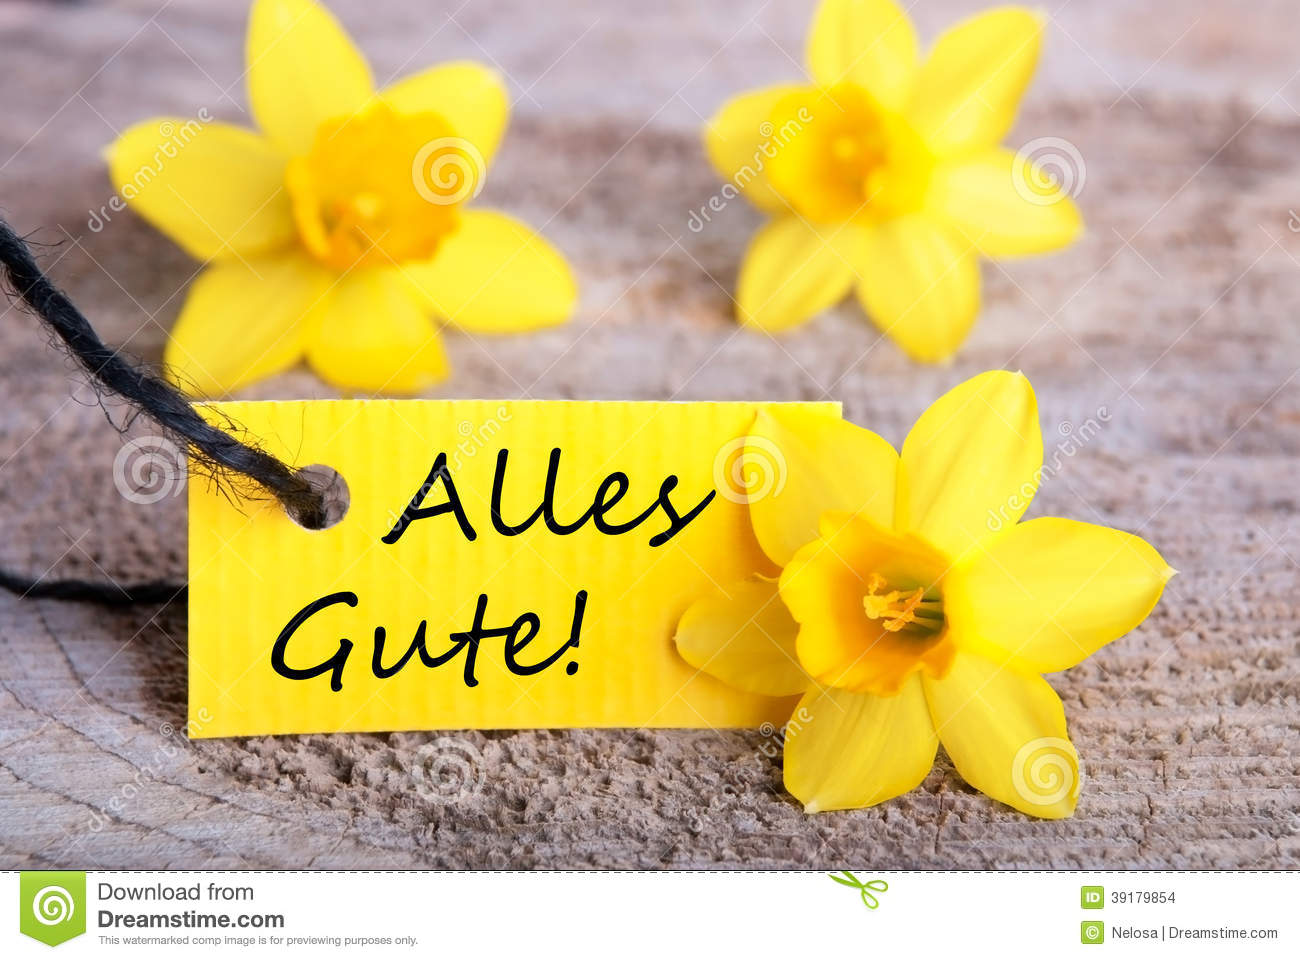 Alles Gute Meaning